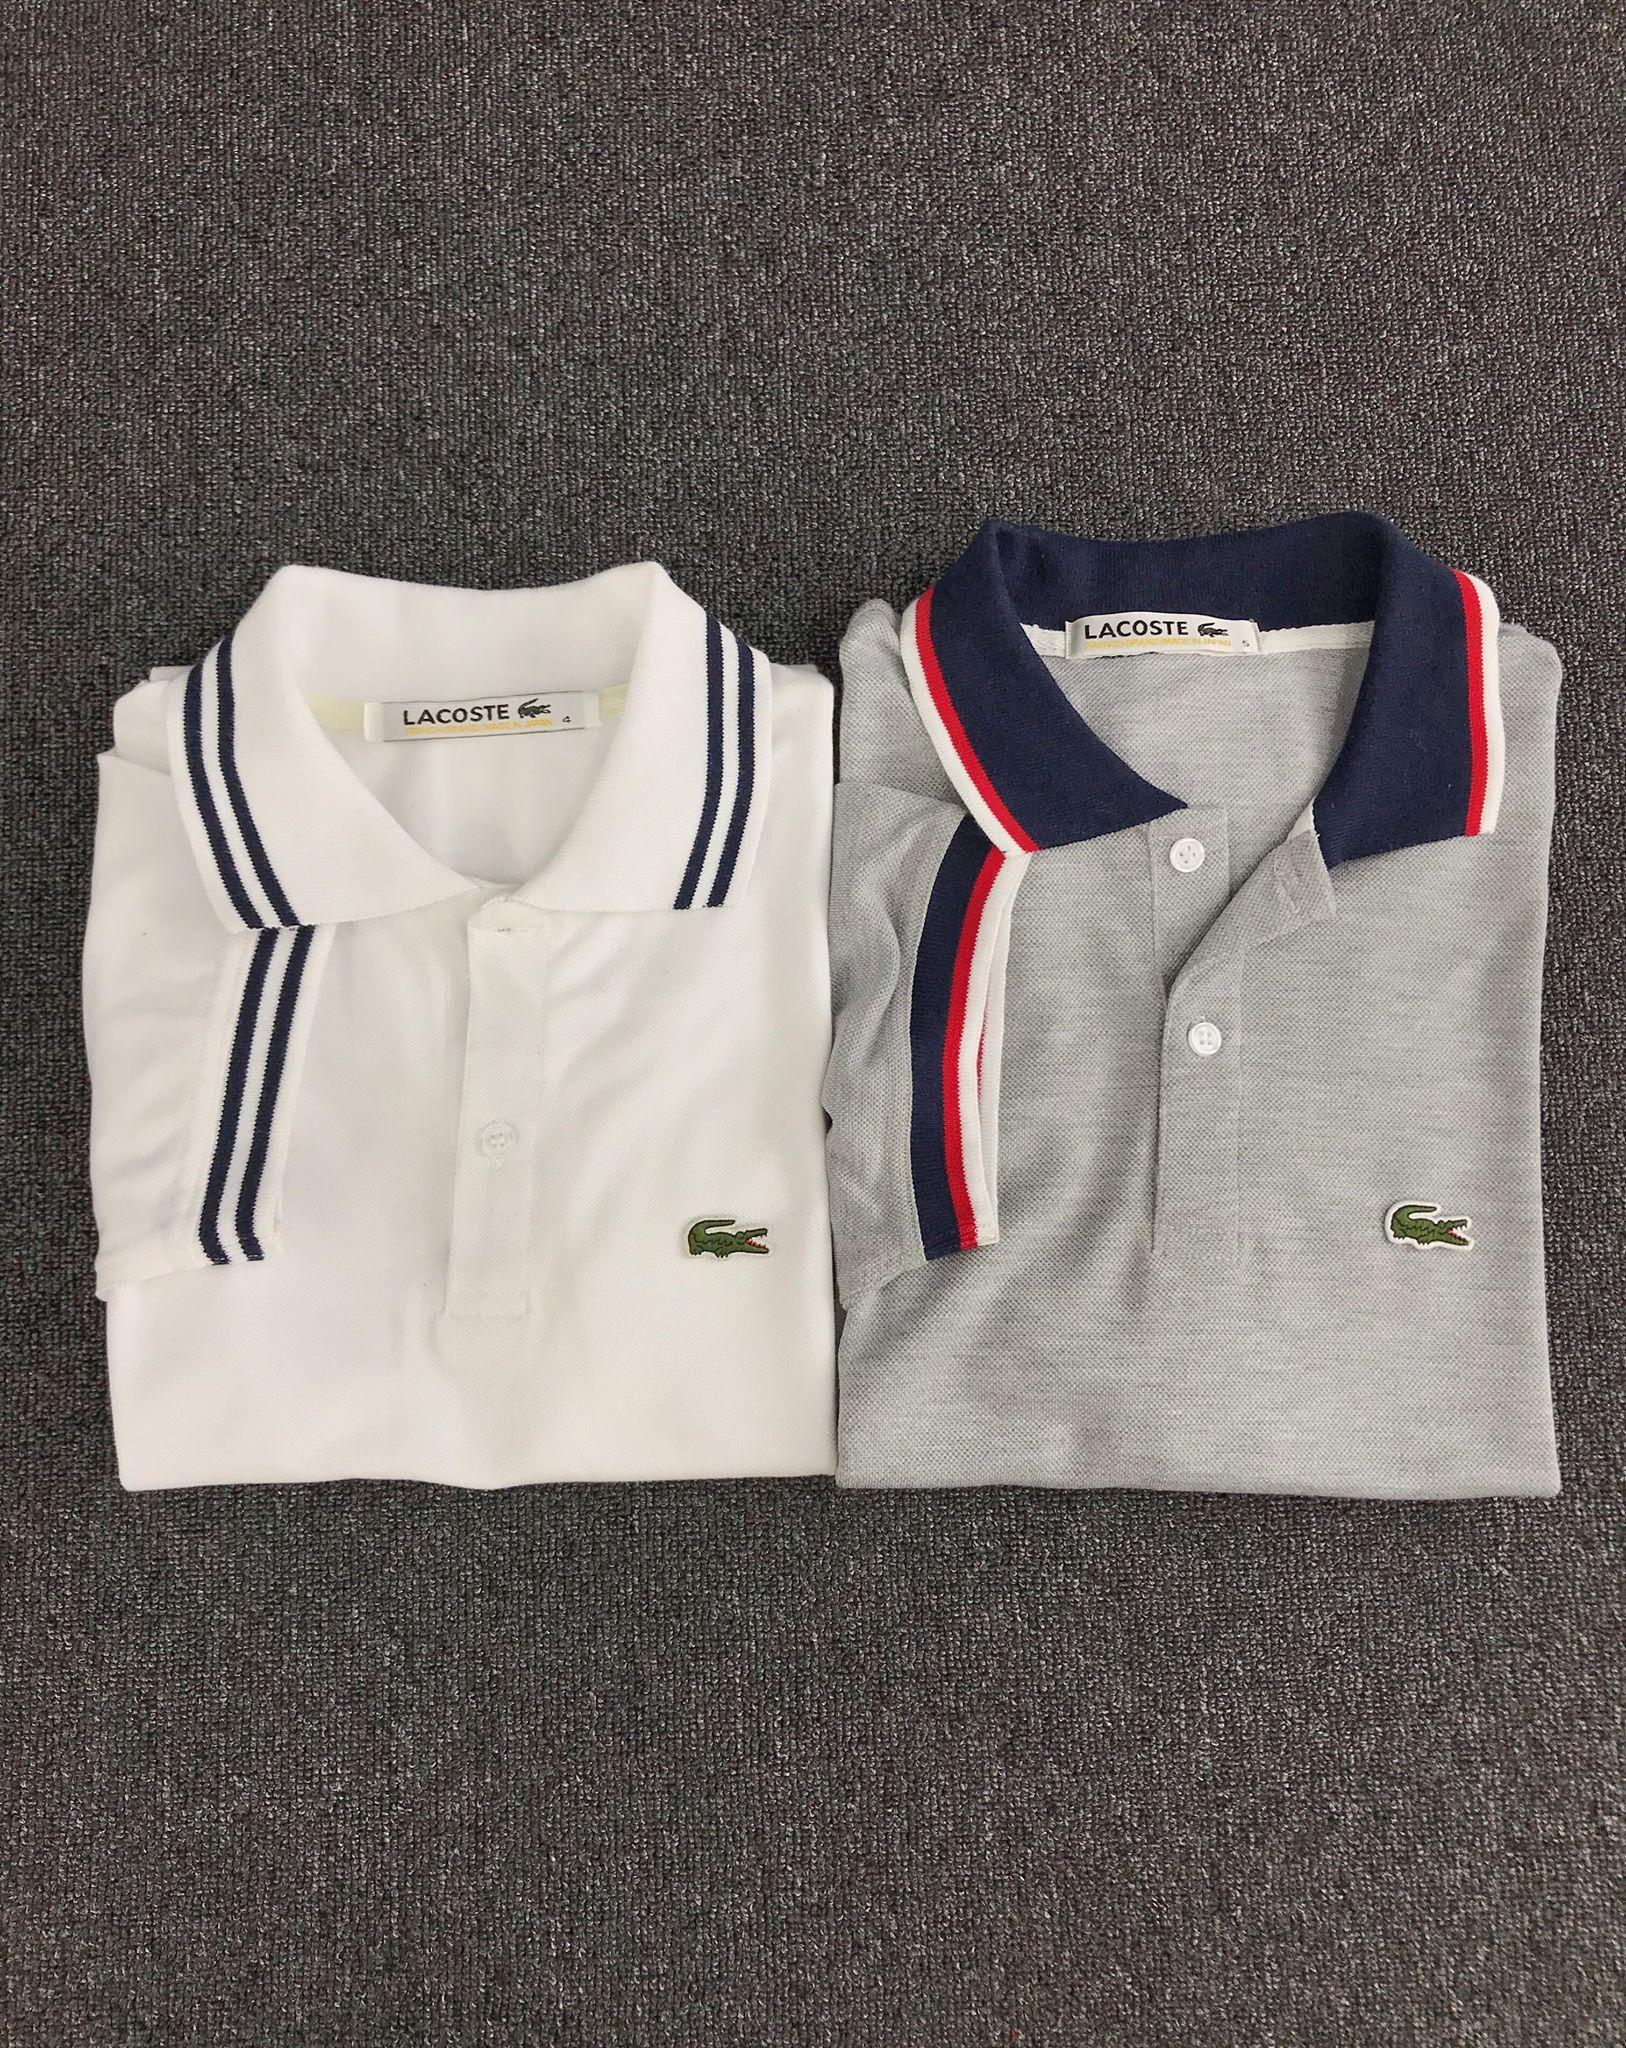 03b08a85b Lacoste Philippines  Lacoste price list - Lacoste Bag   Perfume for ...